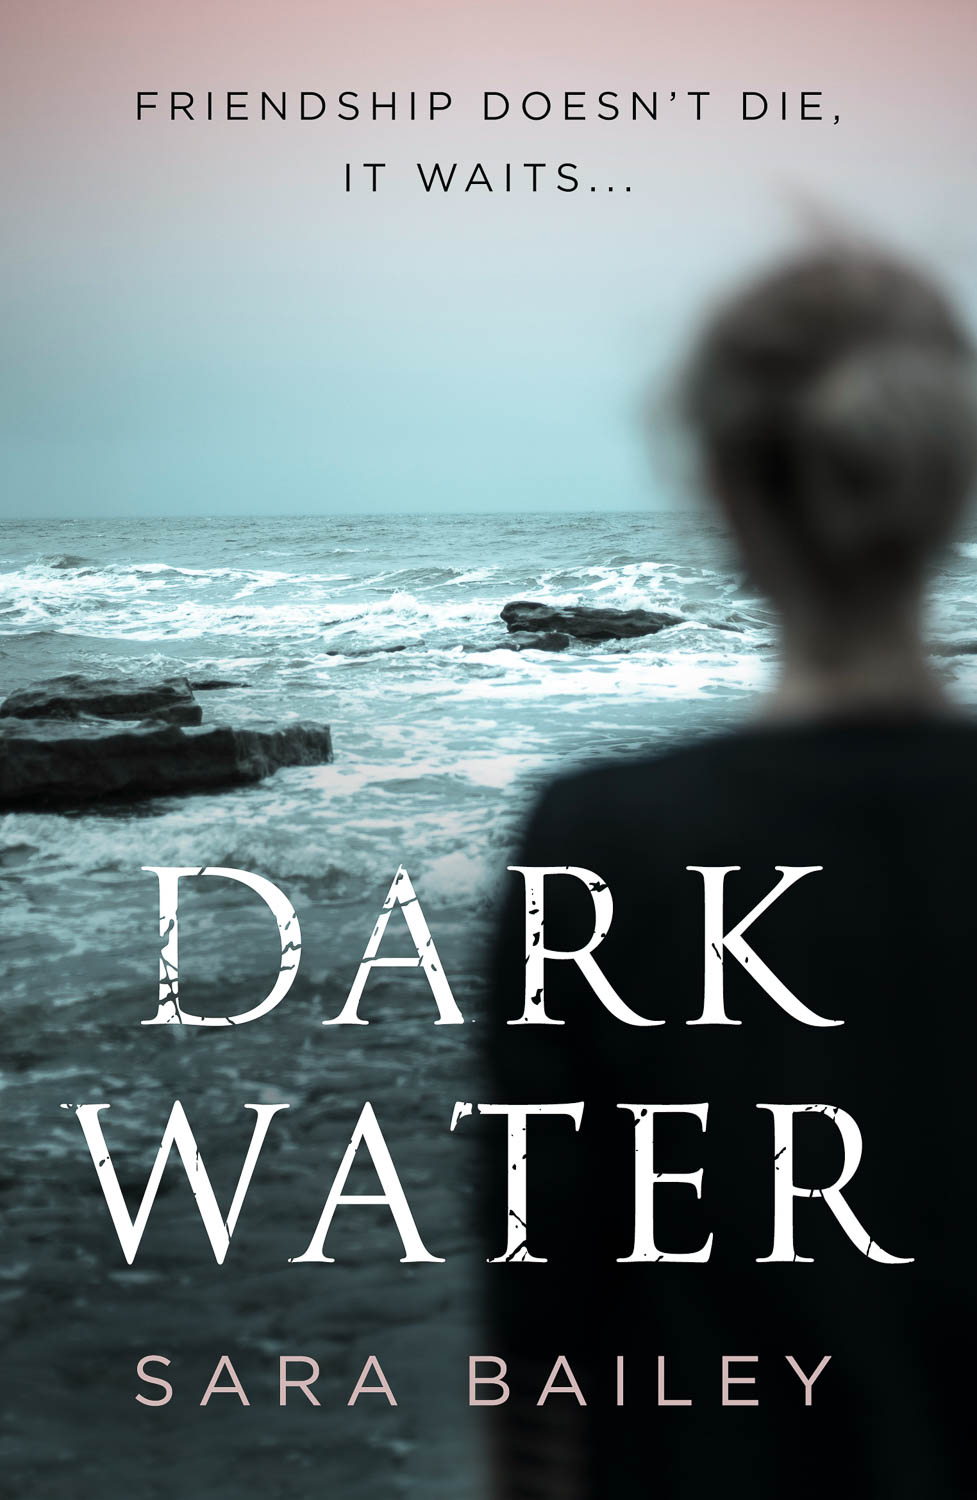 Bailey, Dark Water Book Cover Photograph by Wolf Kettler